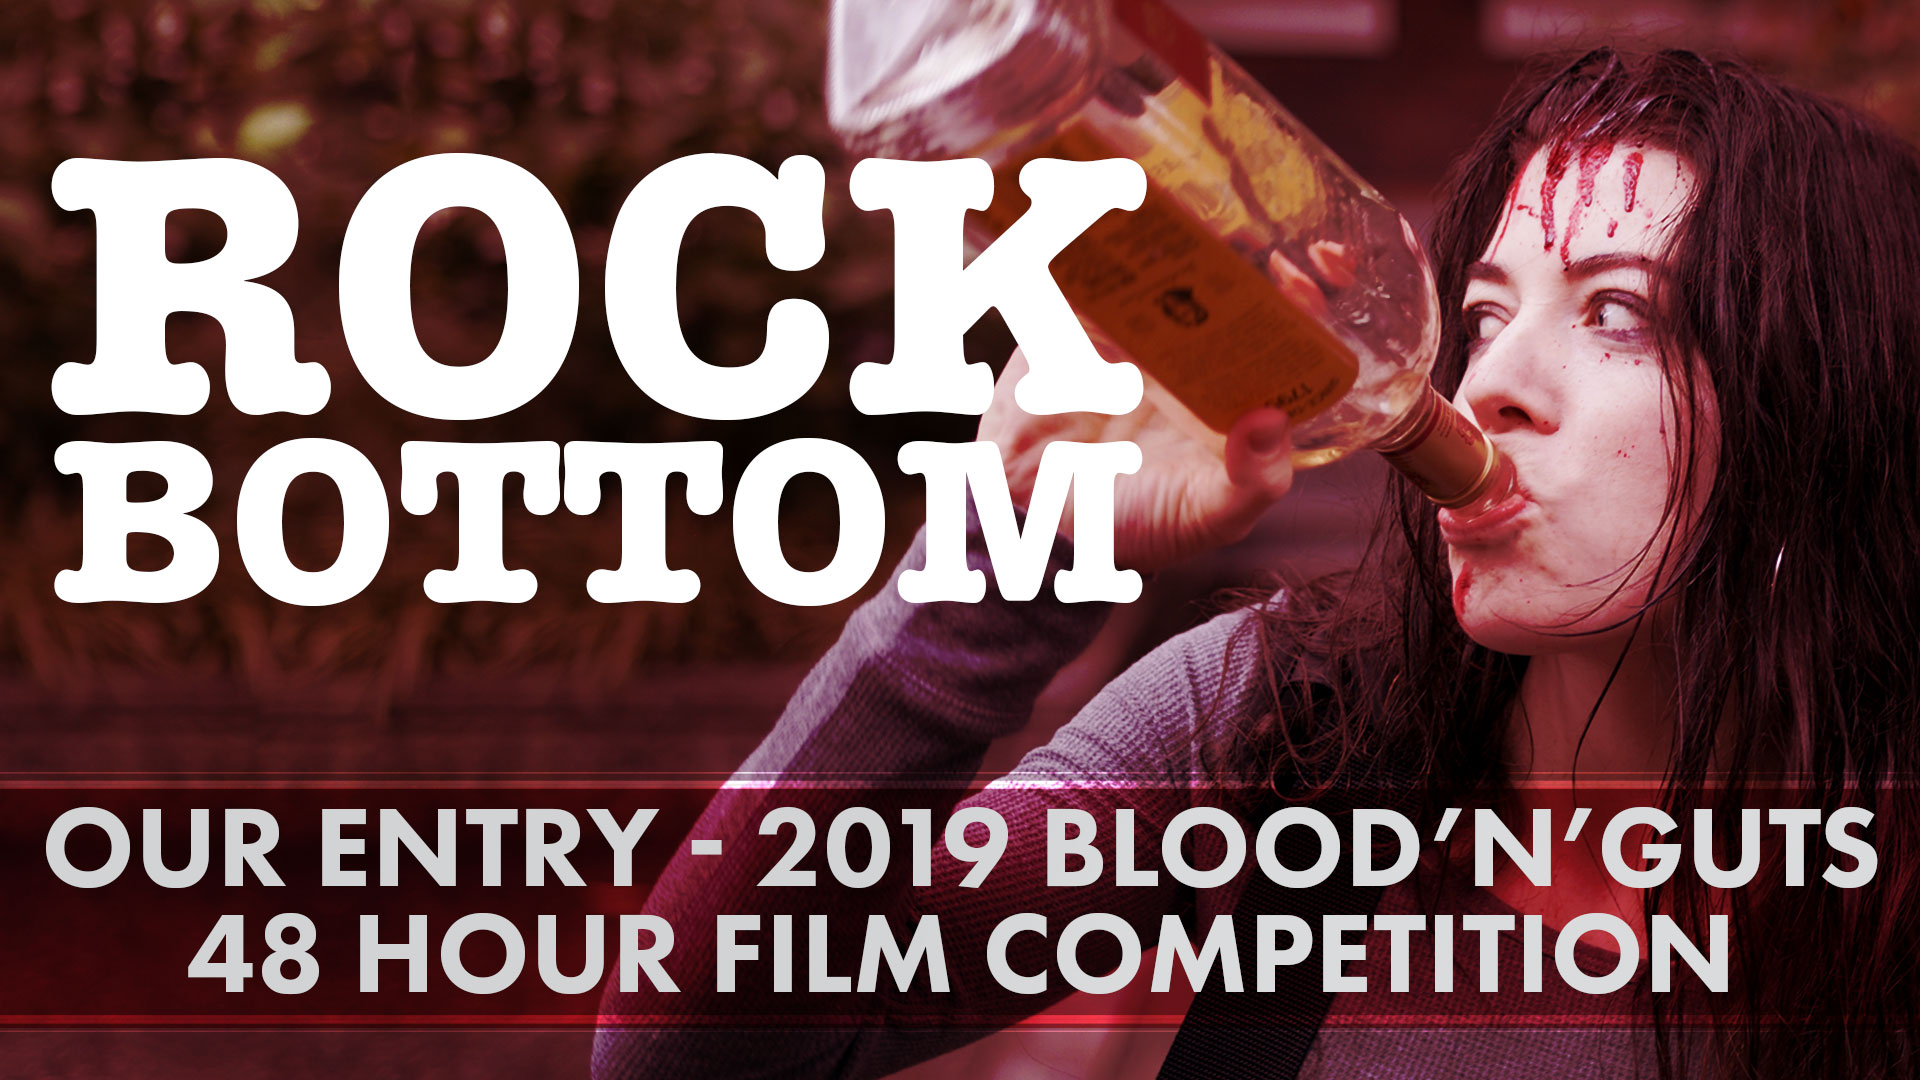 Blood'n'Guts 48 hour Film Competition  2019